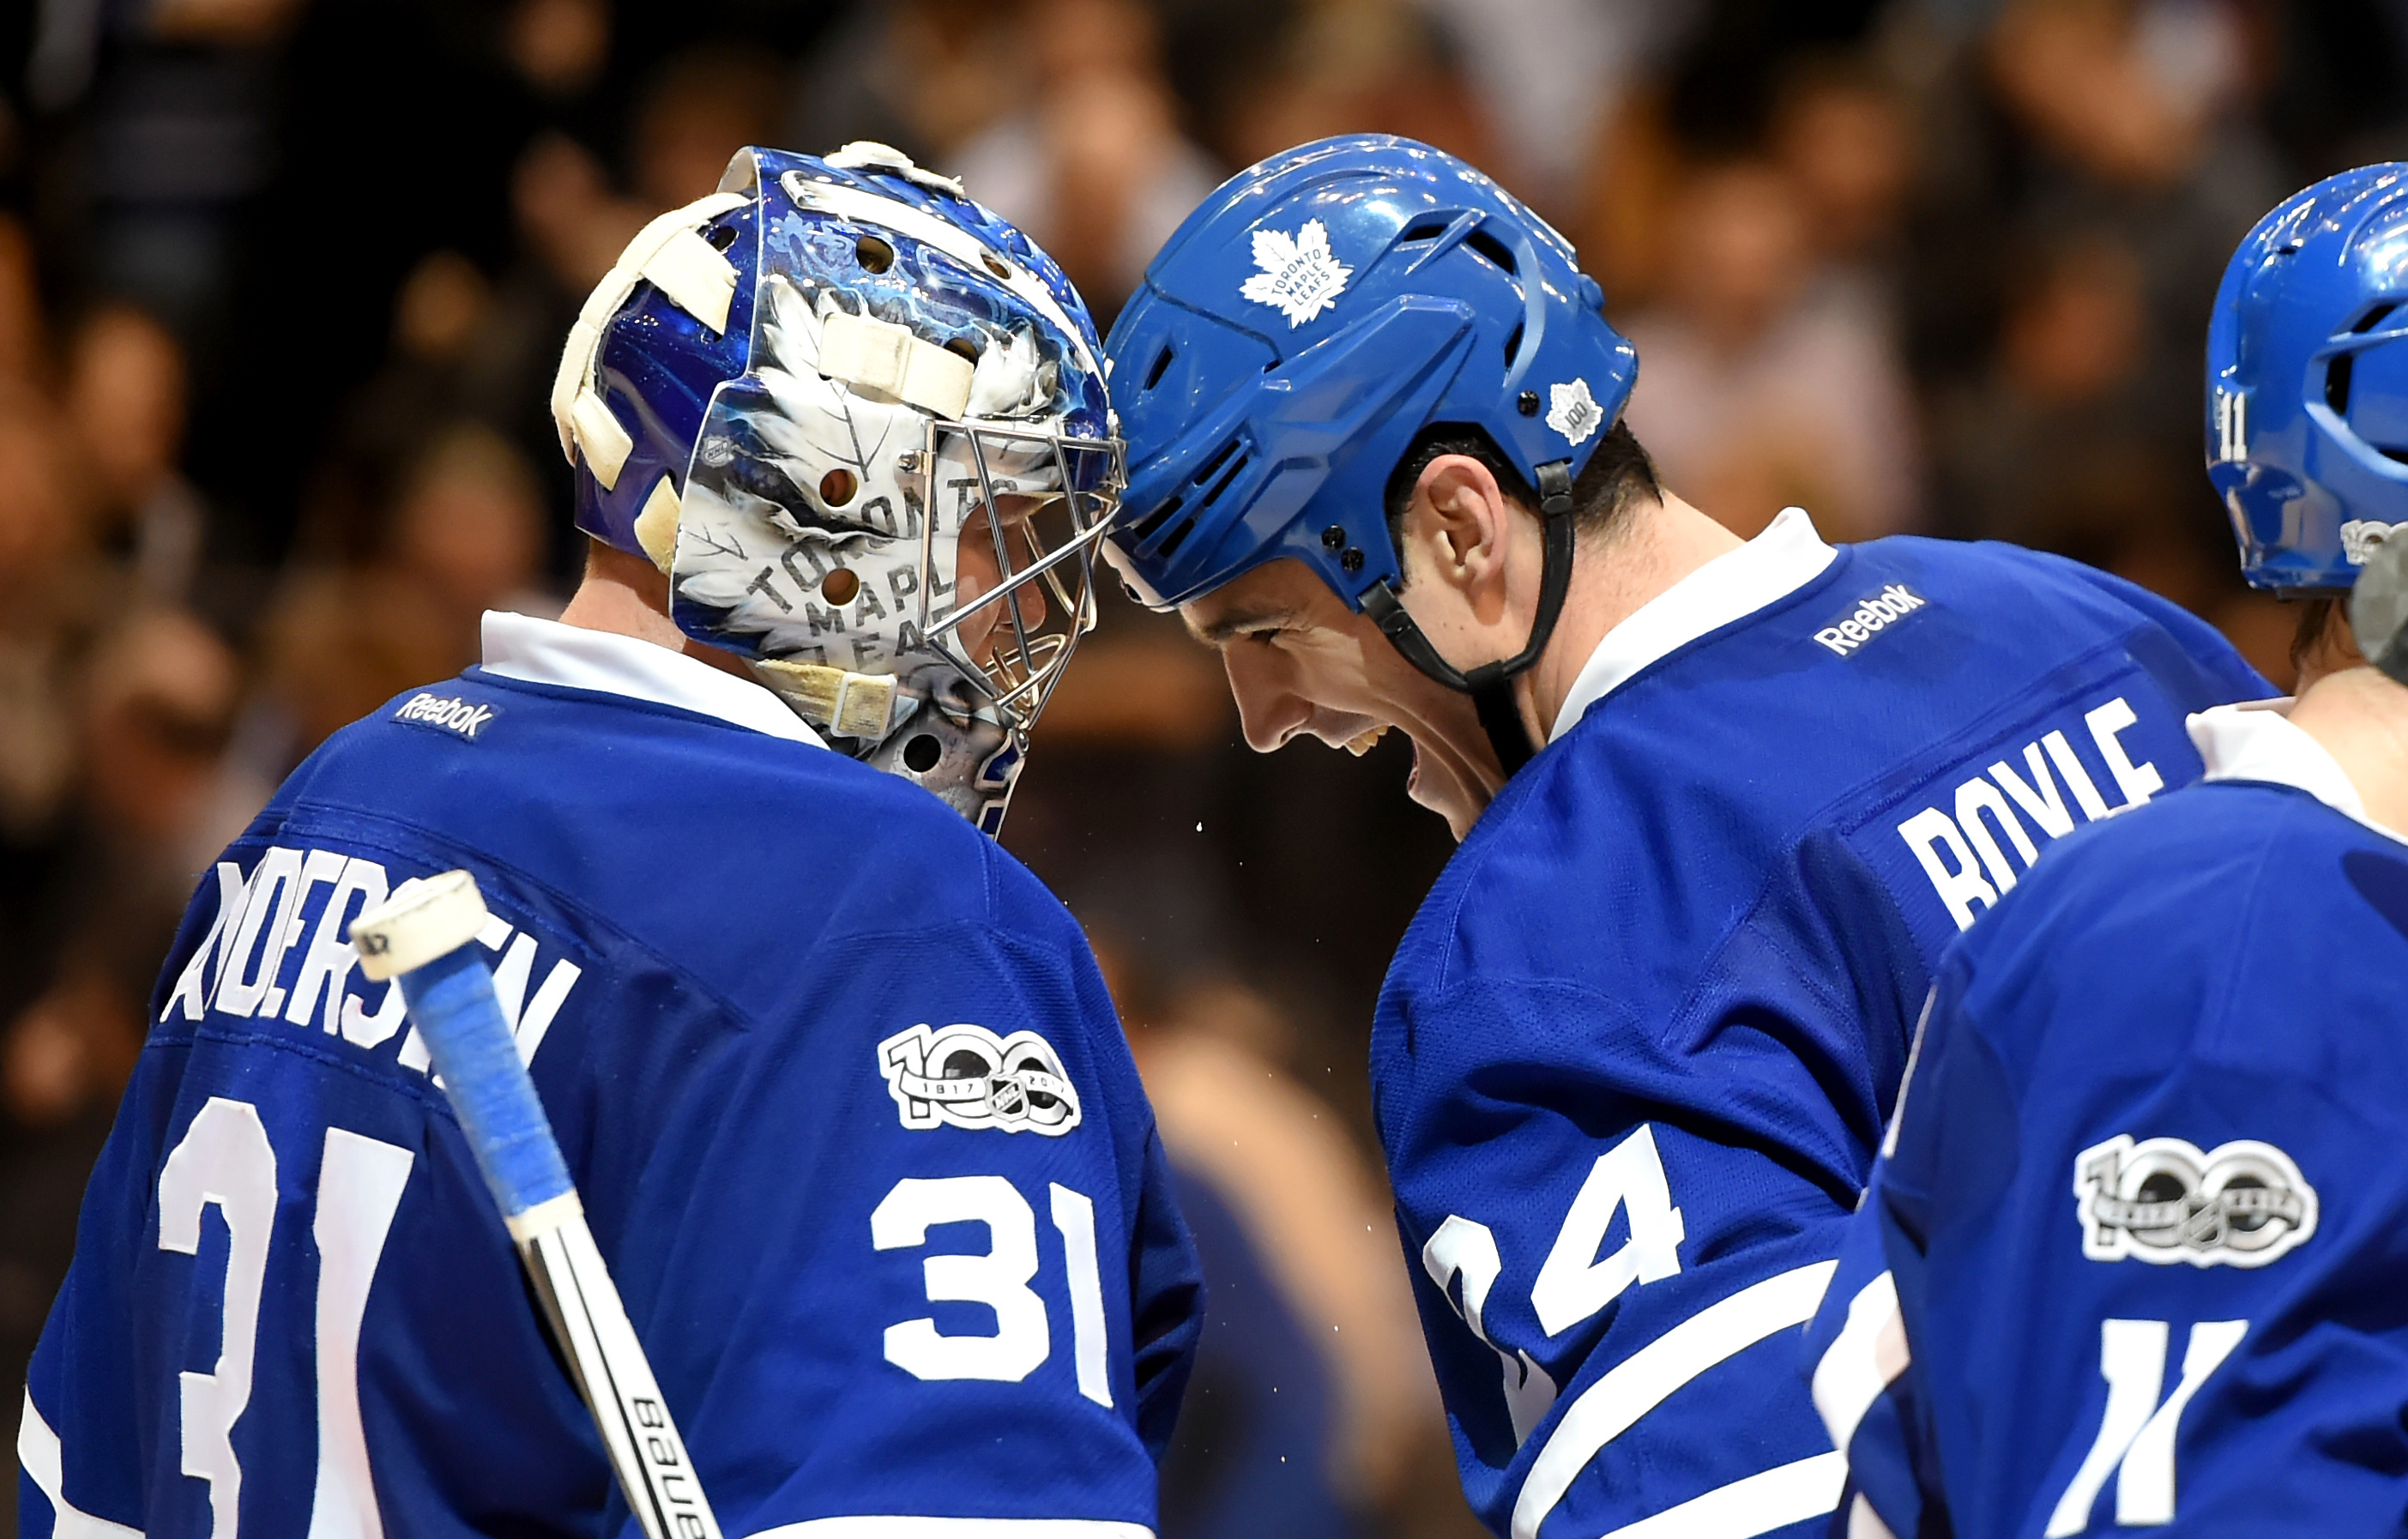 9925320-nhl-detroit-red-wings-at-toronto-maple-leafs